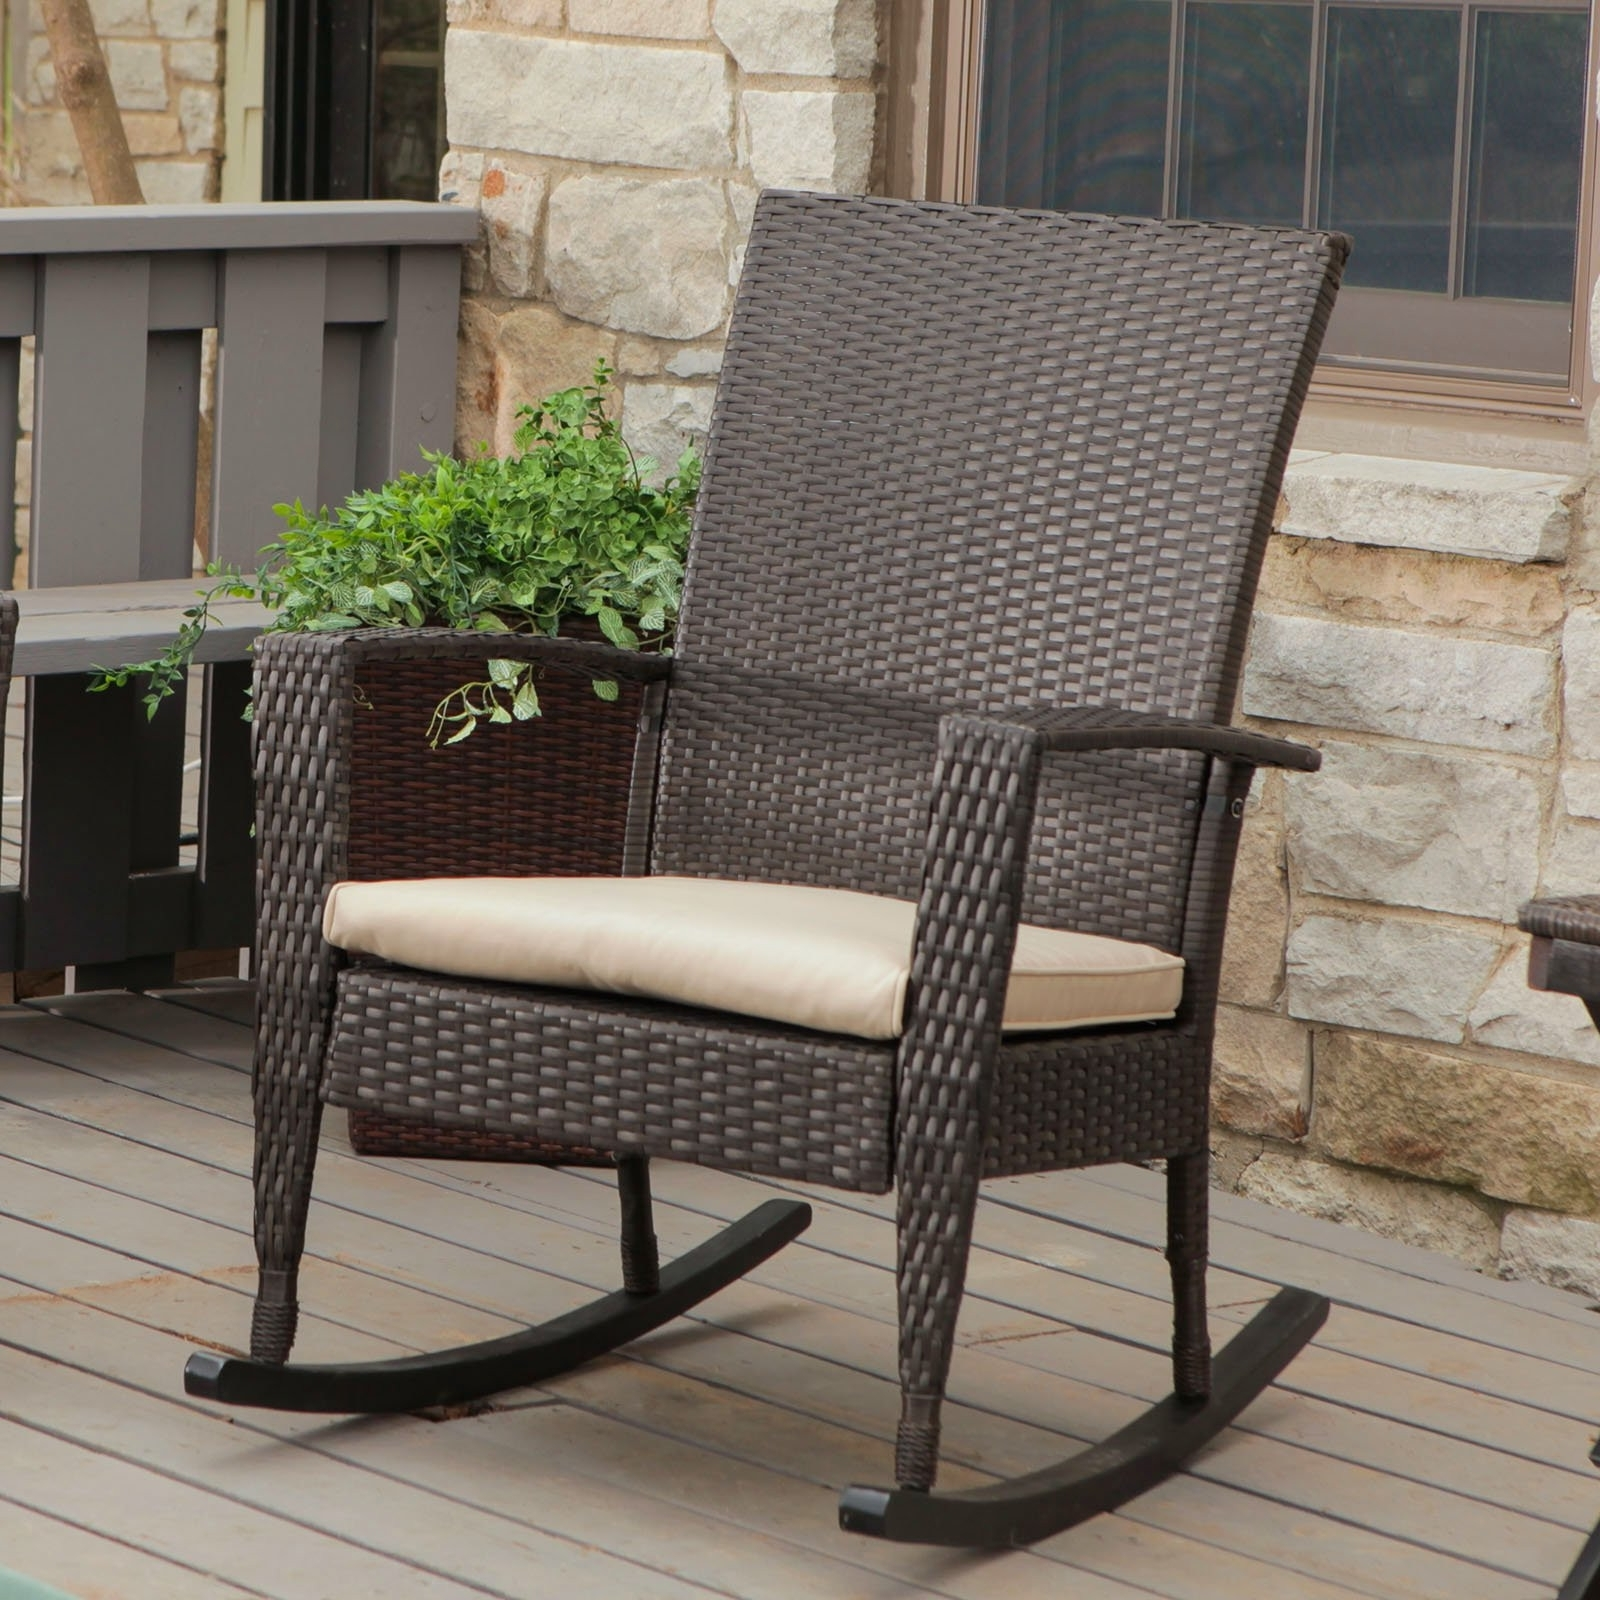 Outside Rocking Chair Sets Pertaining To Favorite Rocking Patio Furniture Set Beautiful Garden Furniture Covers B And (View 13 of 15)